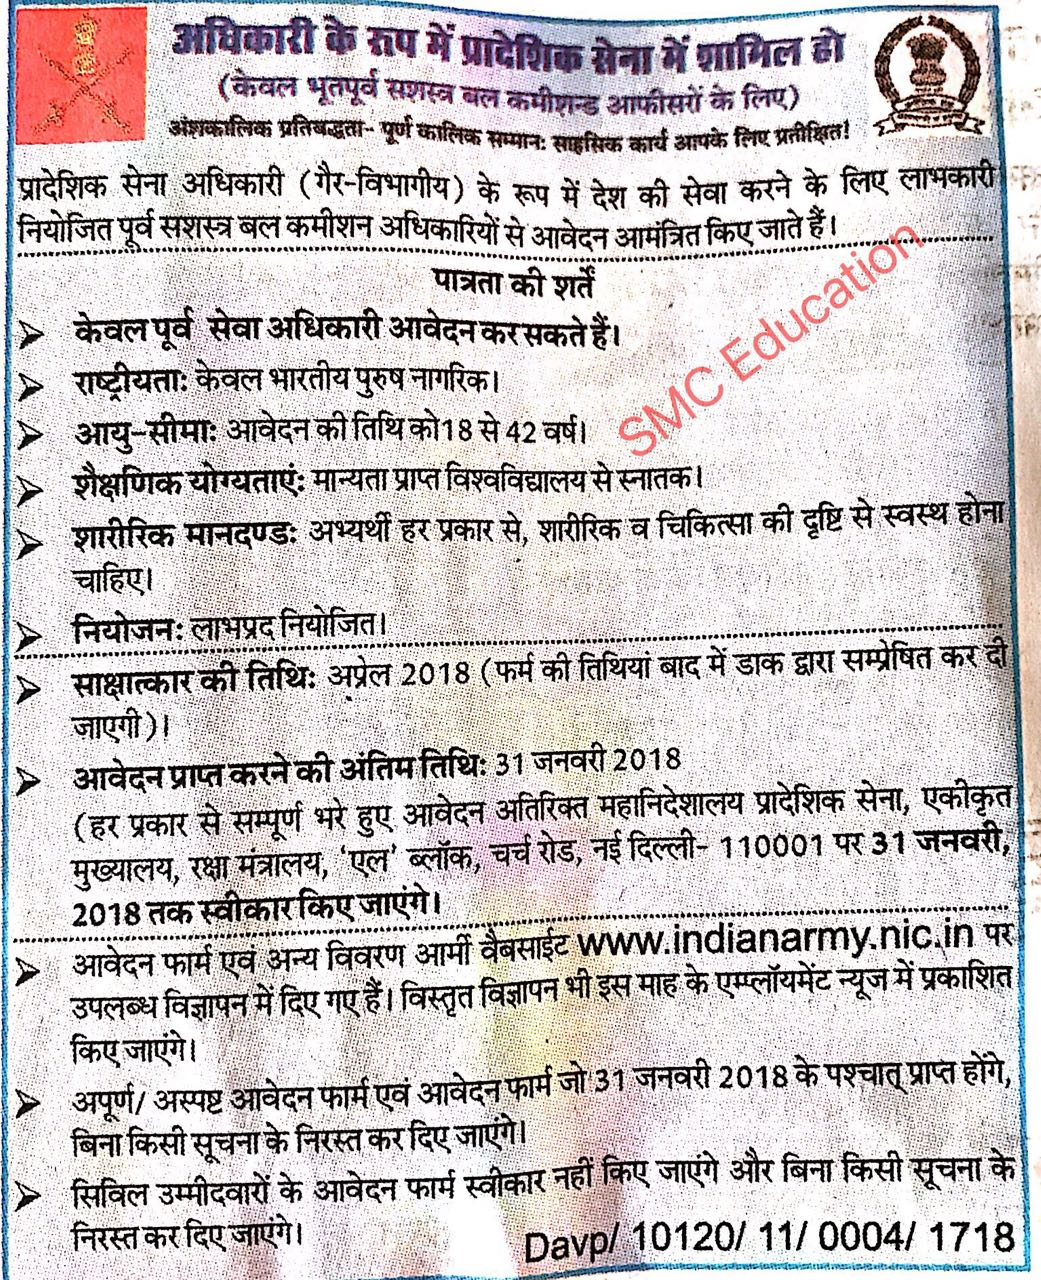 Territorial army bharti 2019 apply now - YouTube